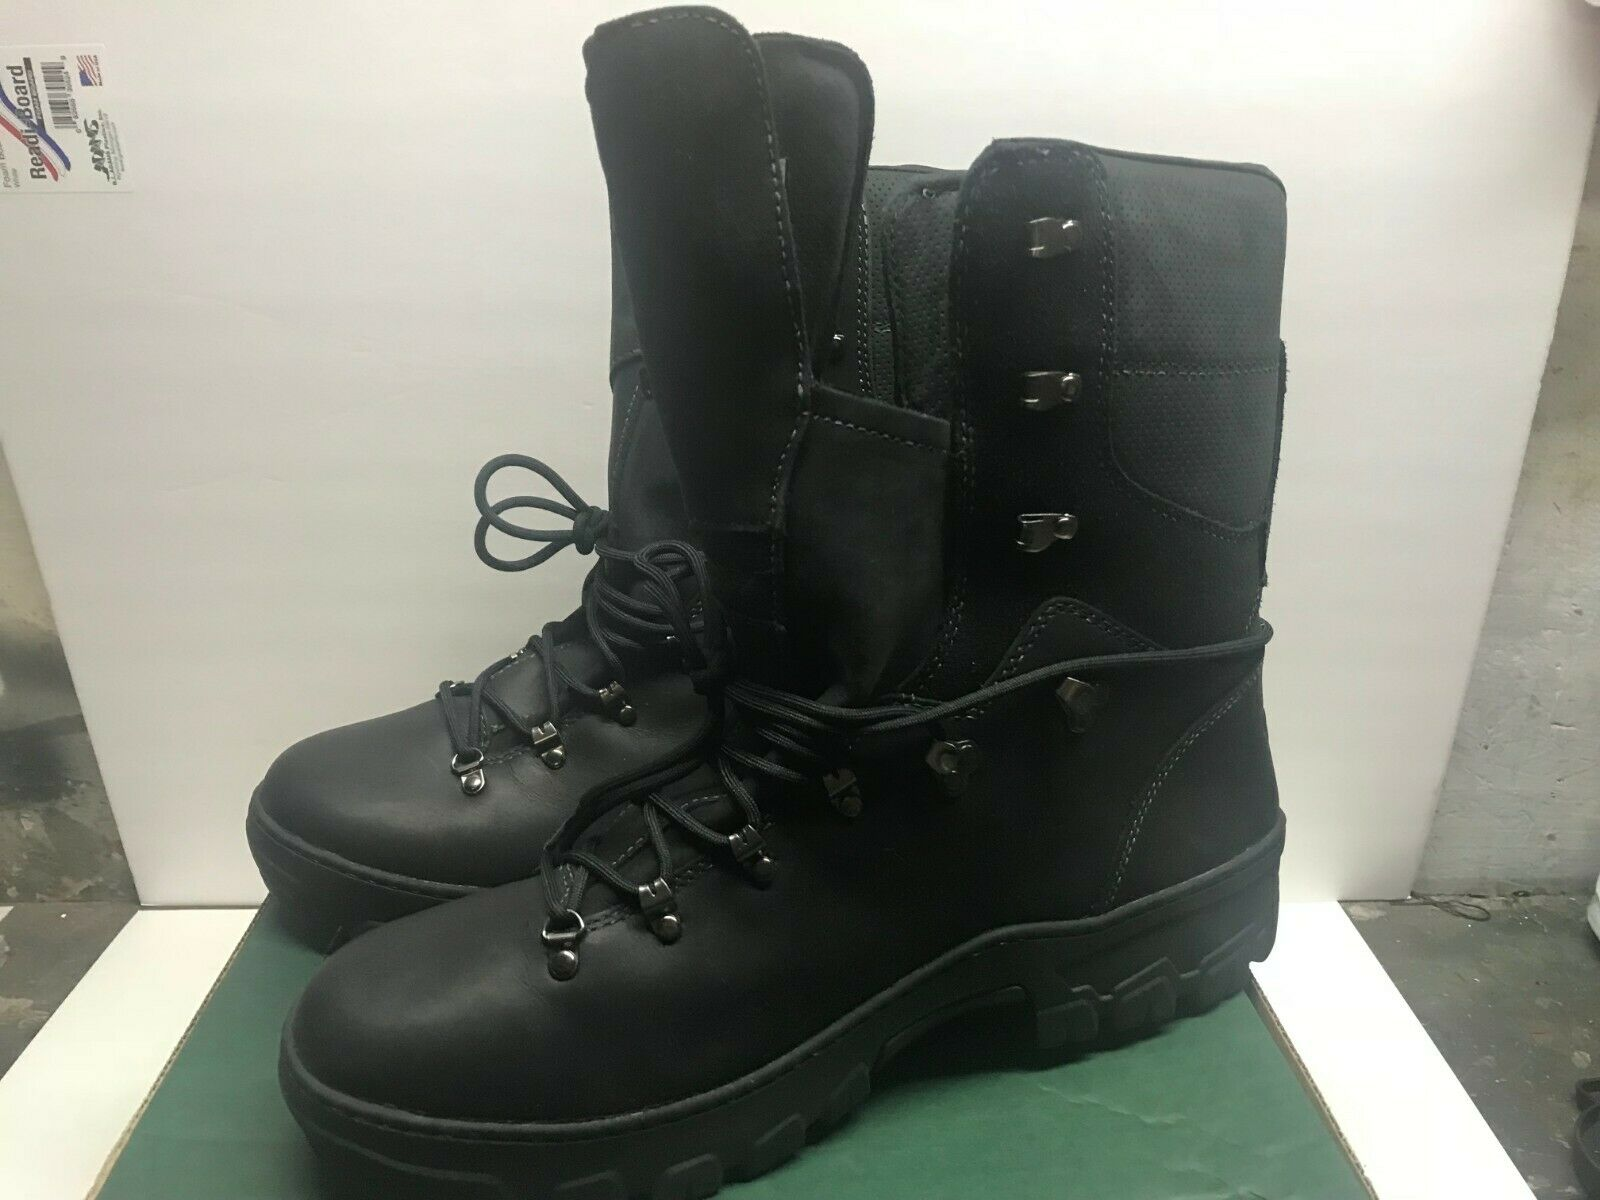 Danner 18054 Men's US 15 Wildland Tactical Firefighter 8  Fire and Safety avvio